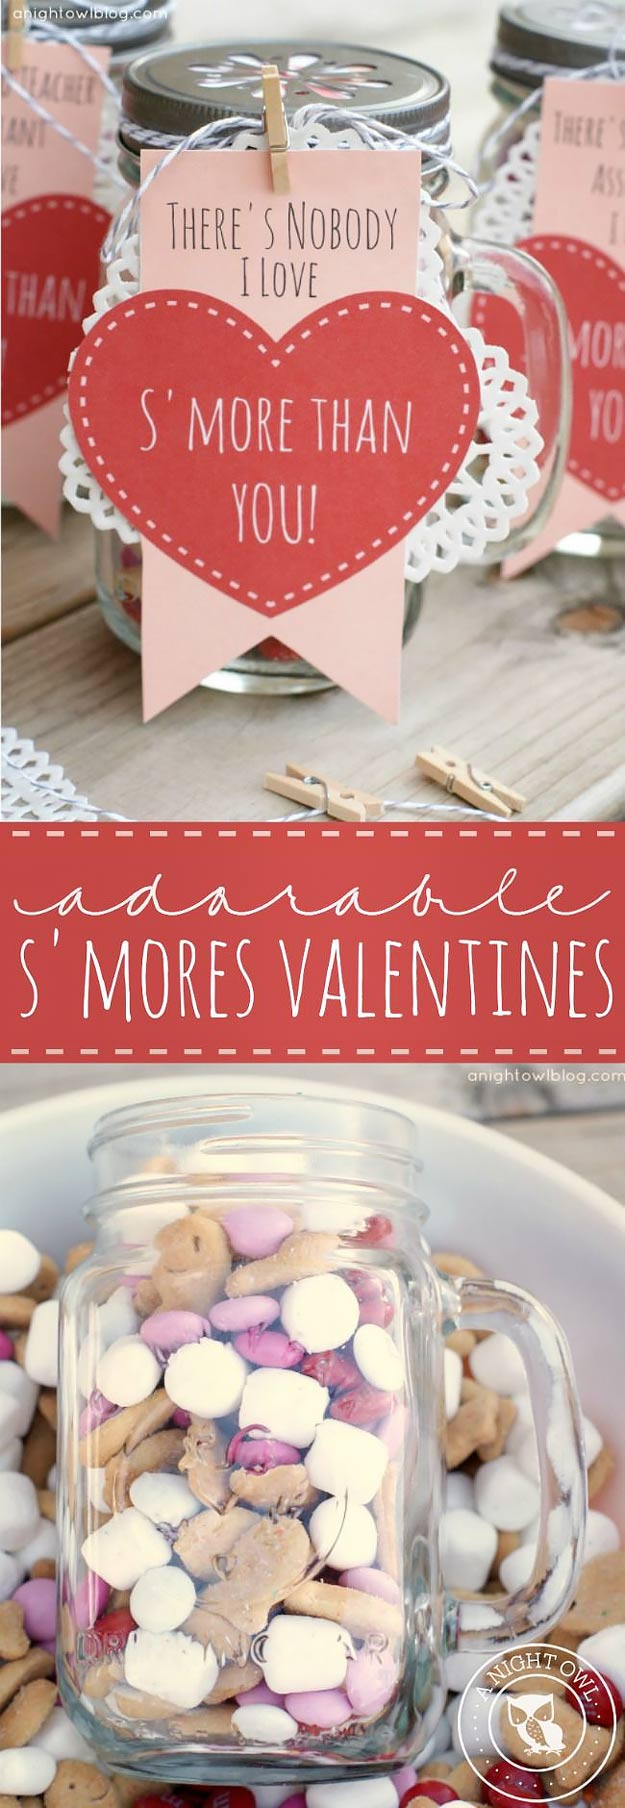 Mason Jar Valentine Gifts and Crafts | DIY Ideas for Valentines Day for Cute Gift Giving and Decor | S'mores Valentines | #valentines